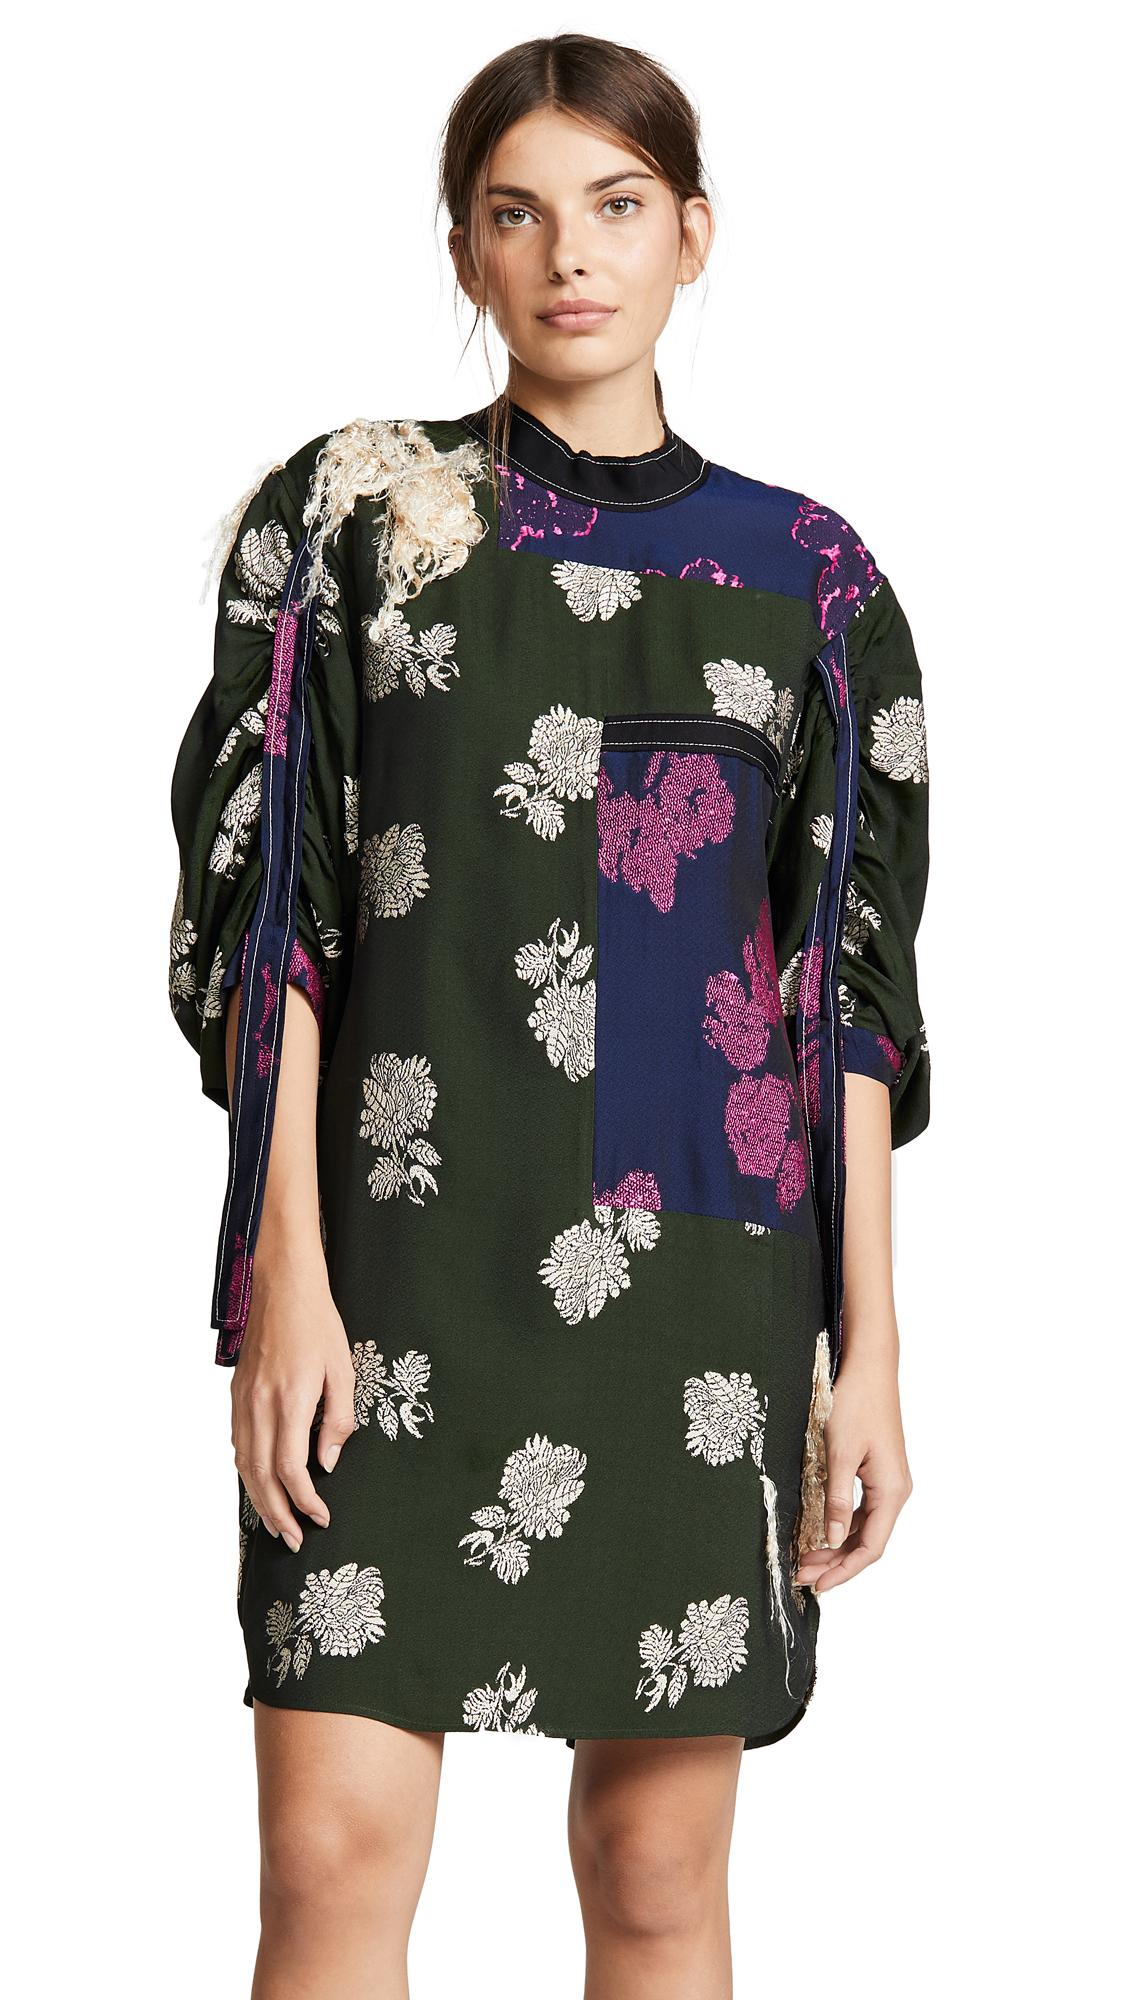 3.1 Phillip Lim Gathered Sleeve Dress In Navy/fuchsia